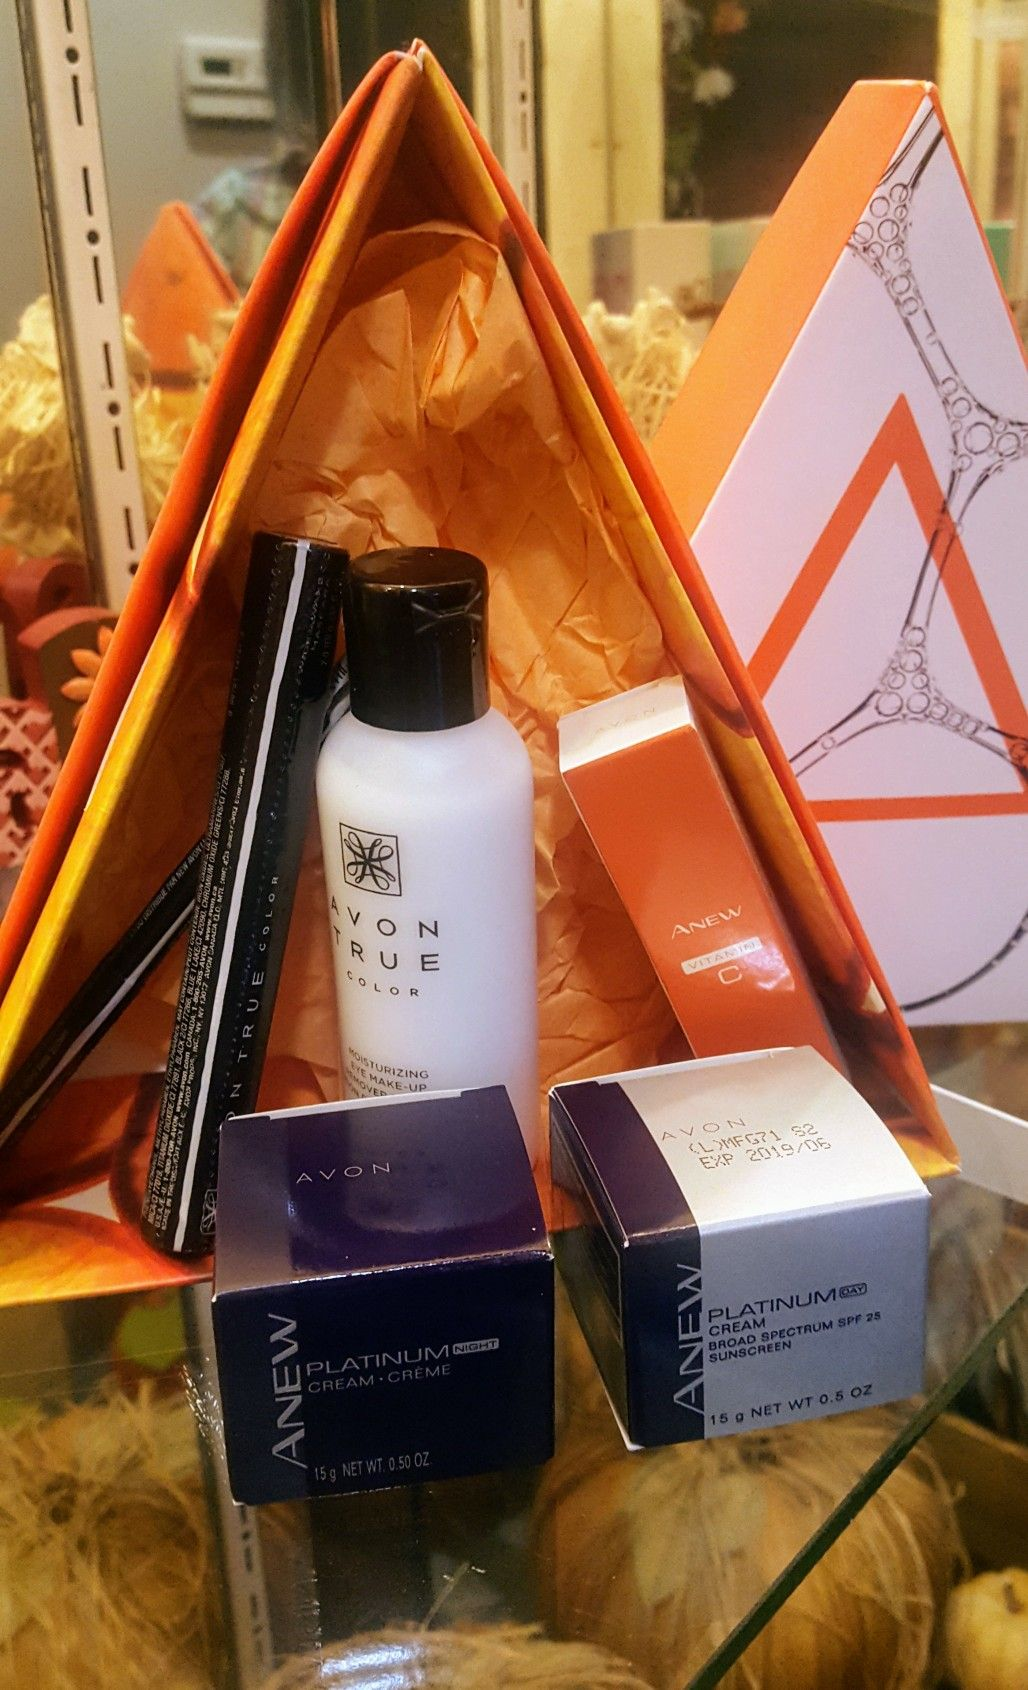 The Avon A Box is a great way to sample different products